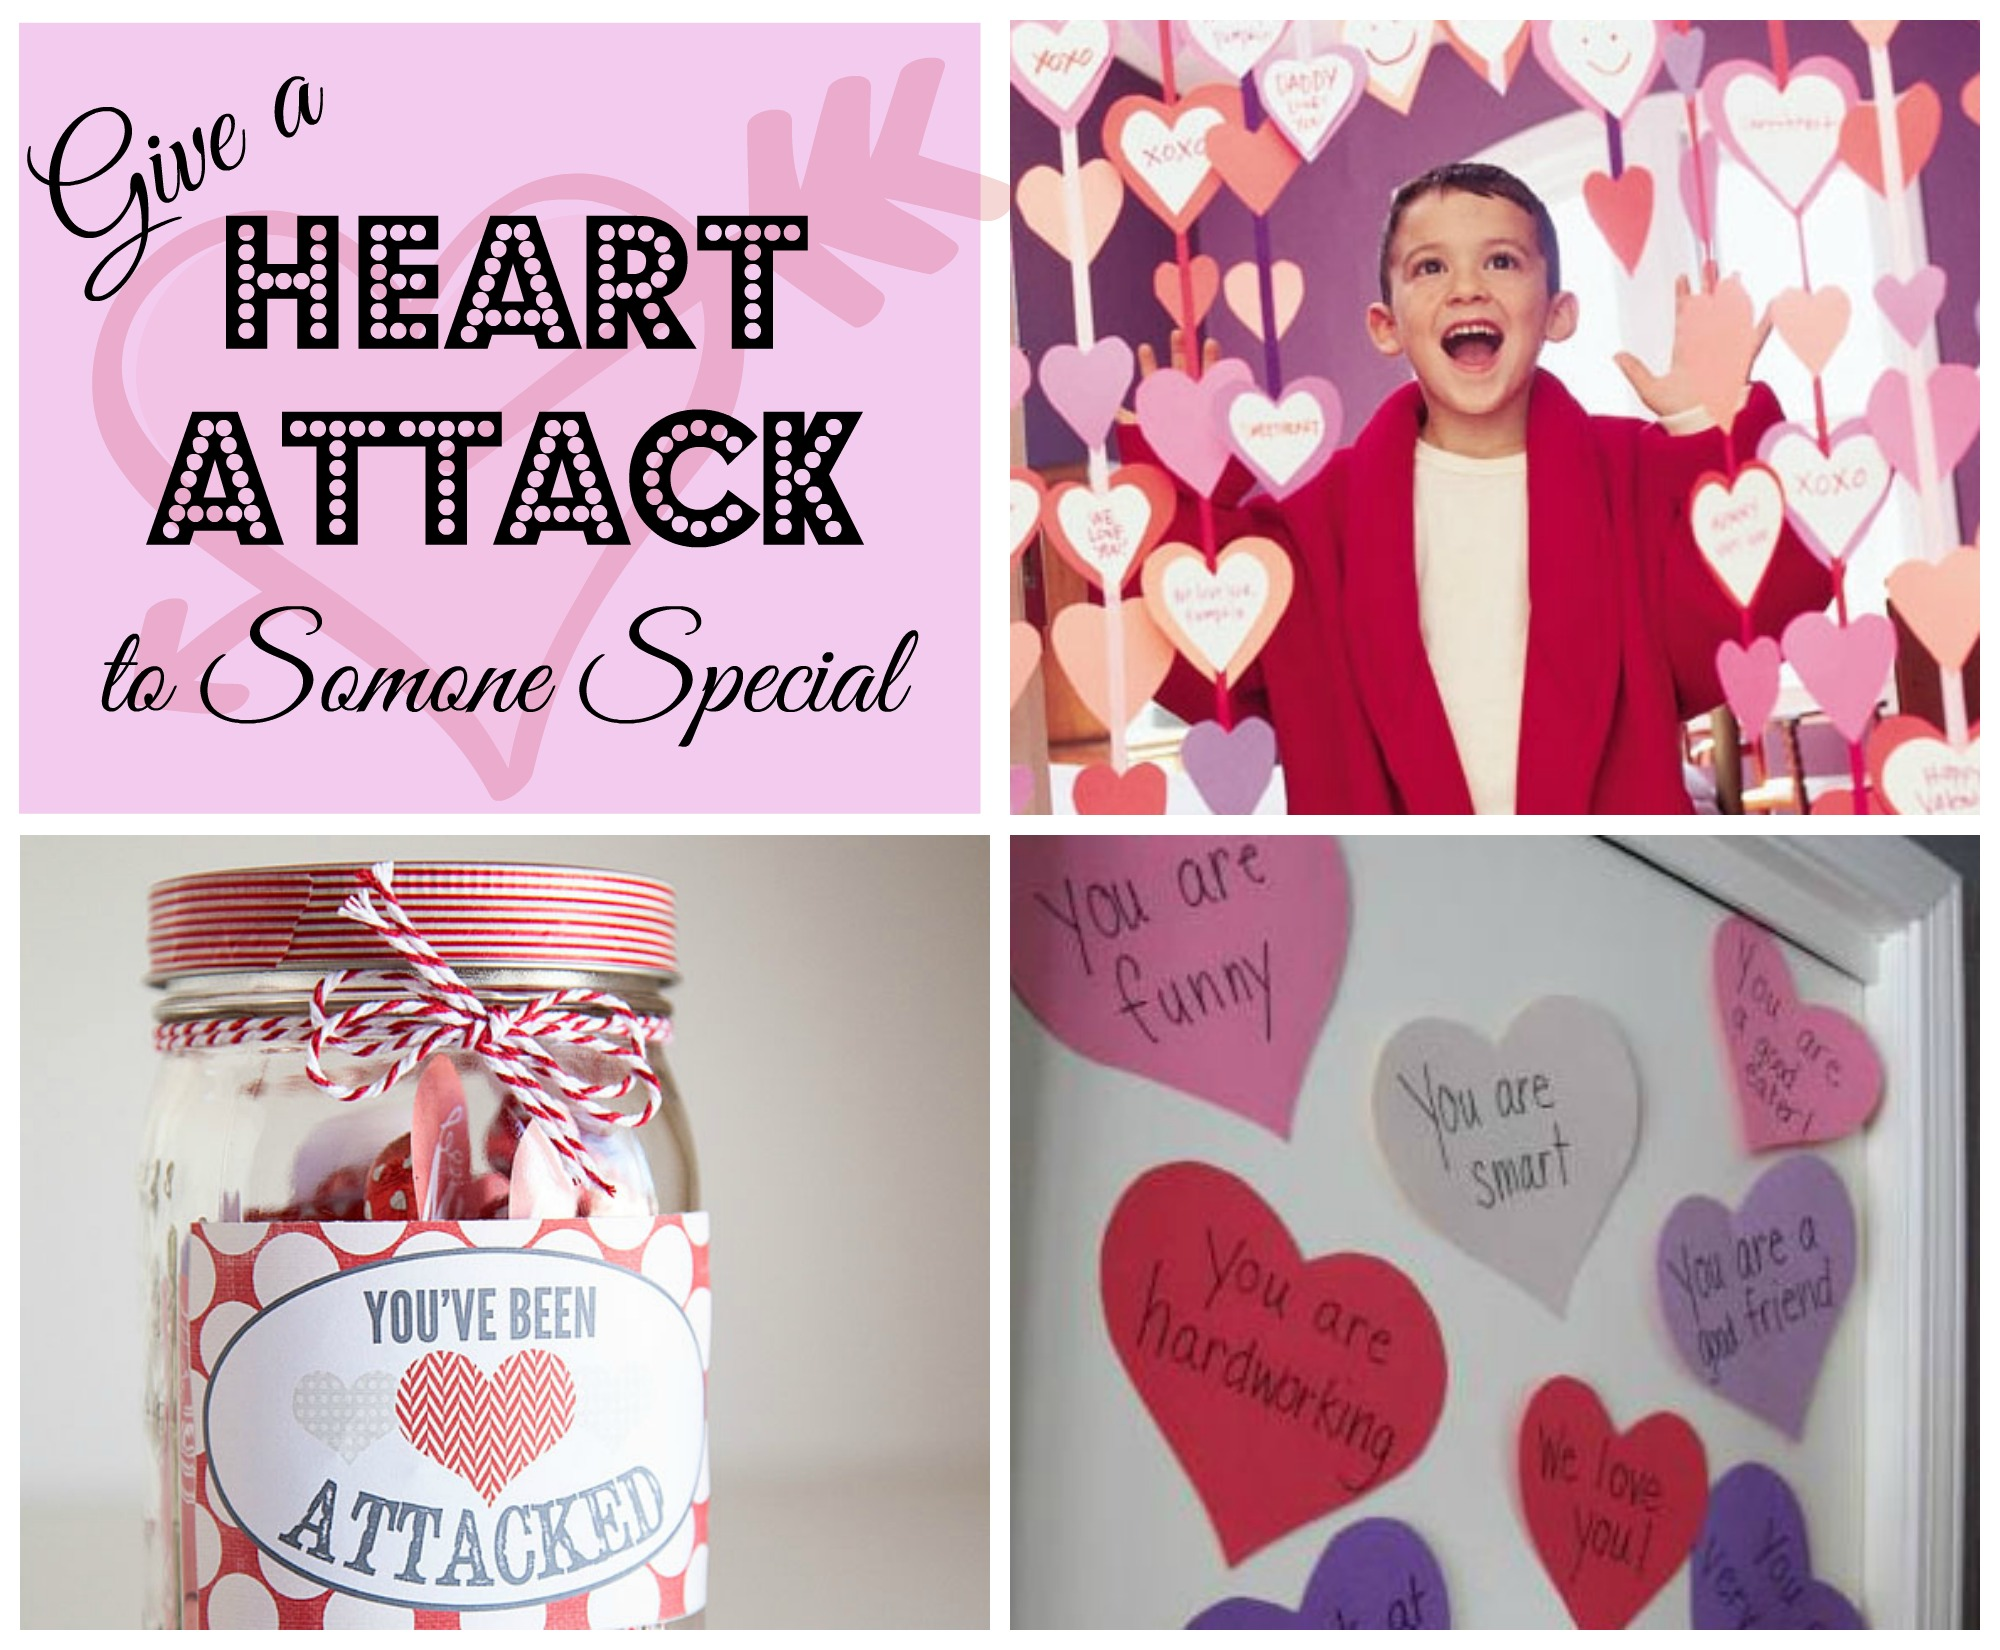 Heart Attack for Valentine's Day